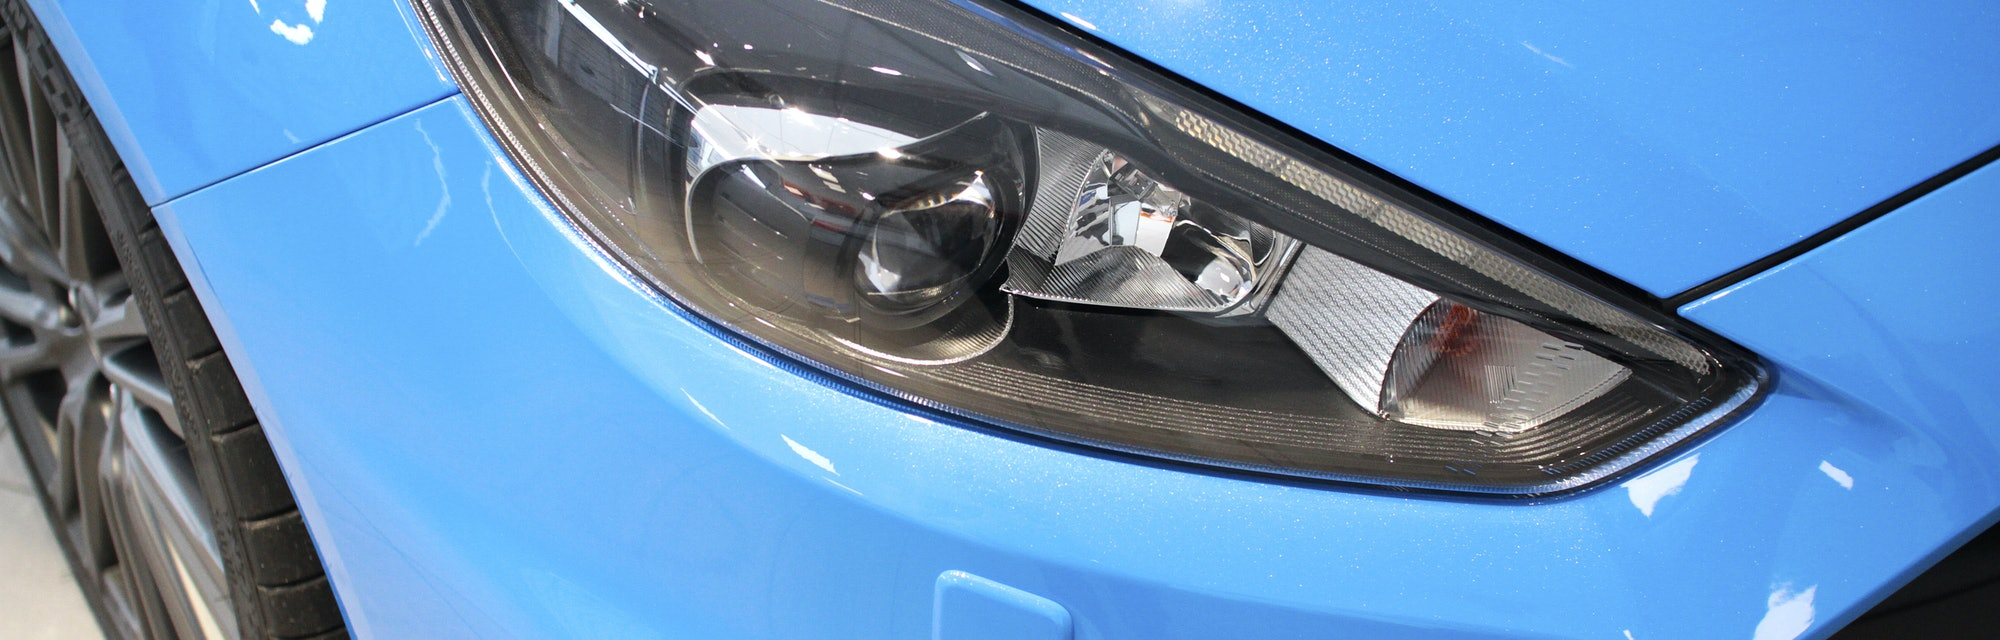 Front light and grill detail from a blue car in saloon